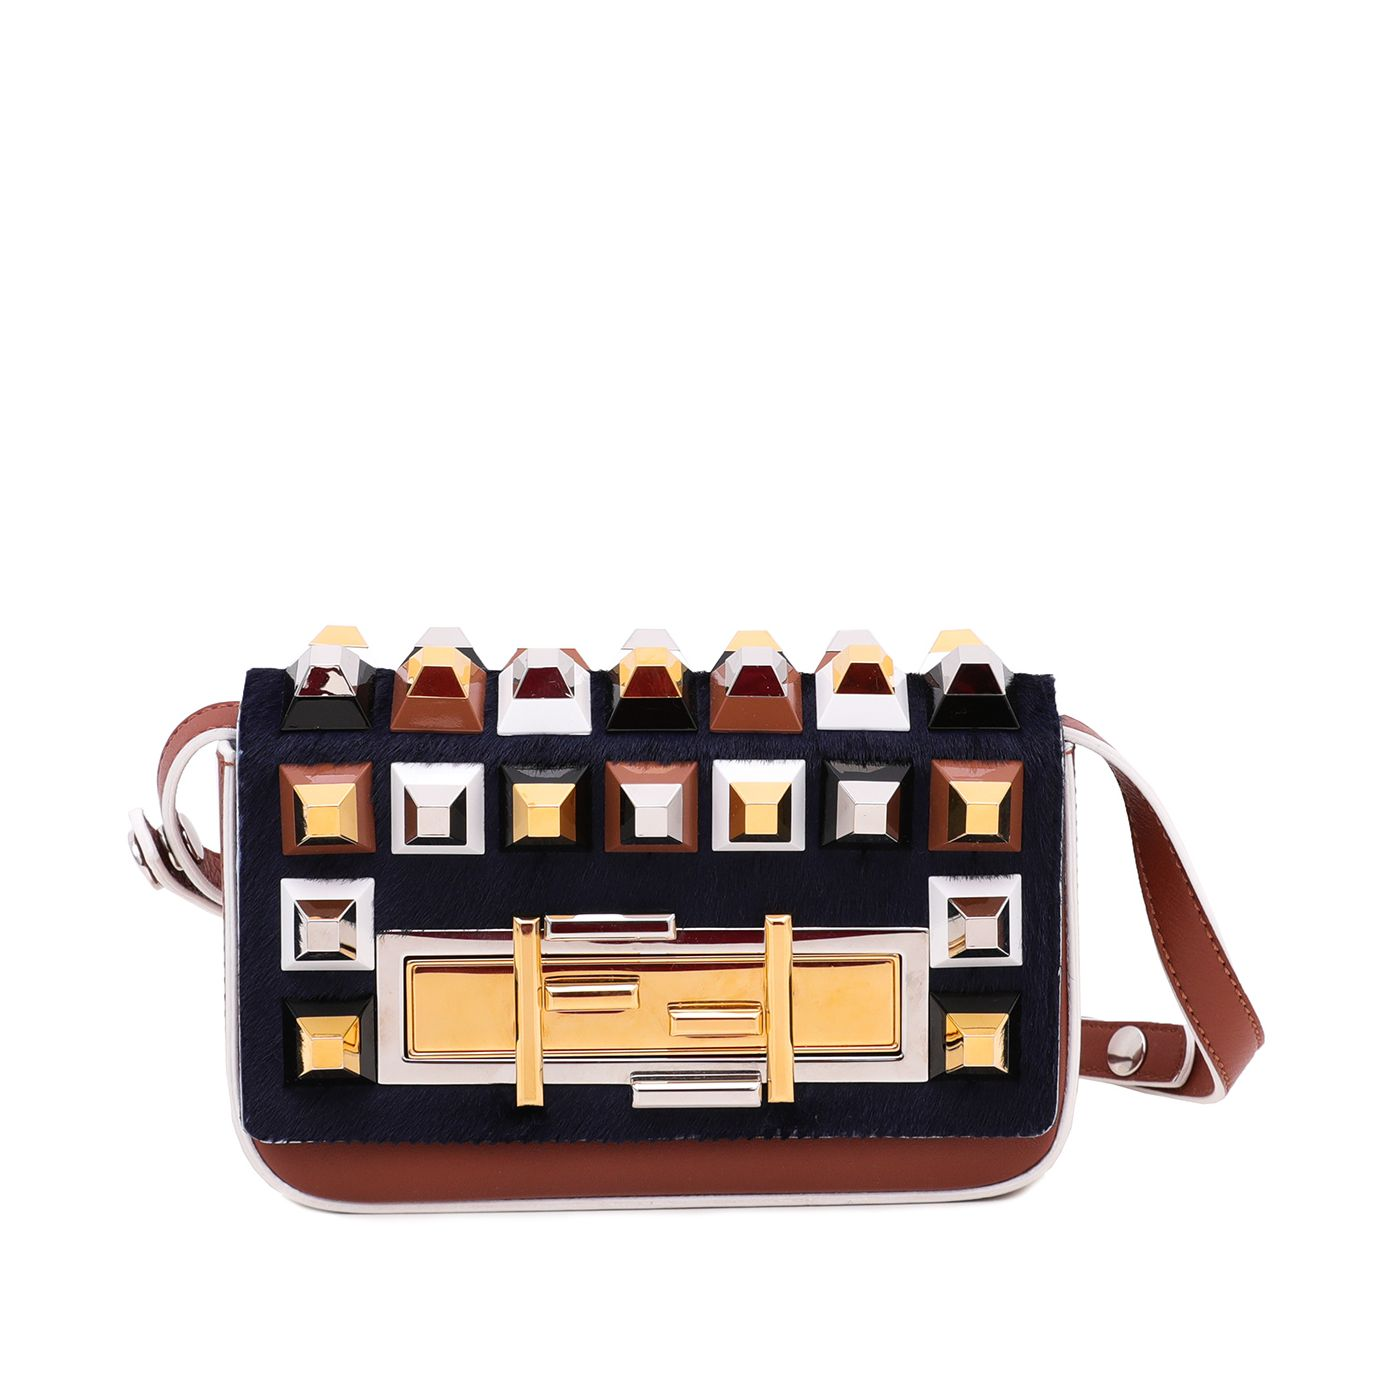 Fendi Bicolor Dolce Studded 3 Baguette Vitello Hair Bag Mini